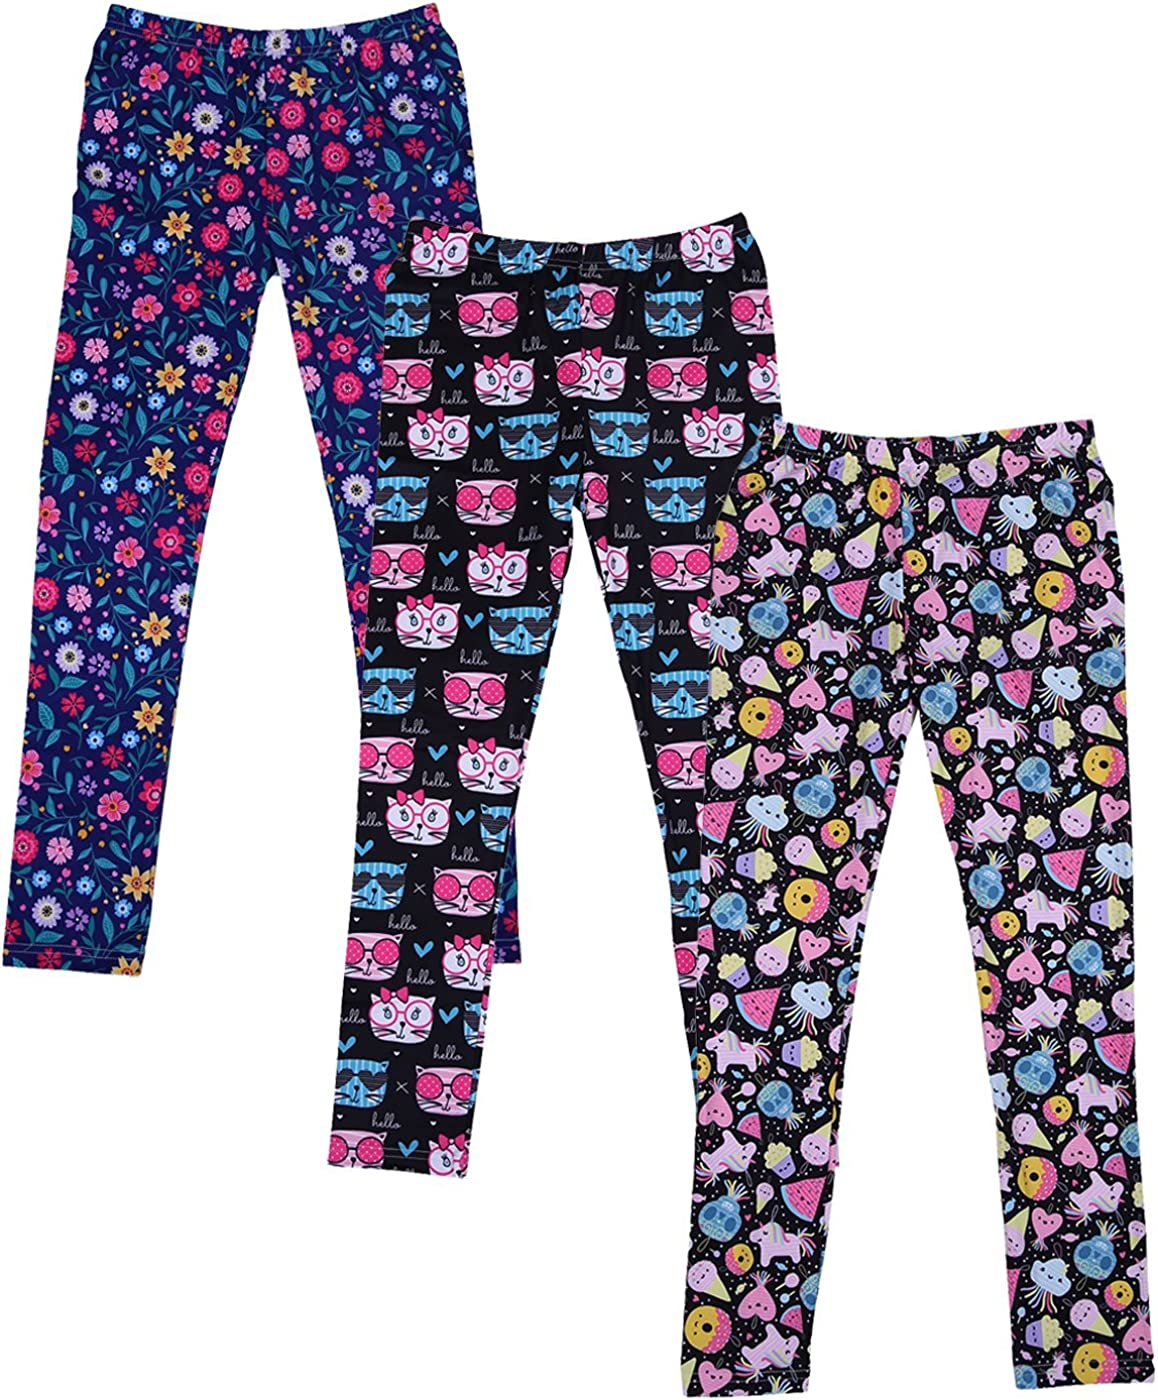 HDE Girls Leggings 3 Pack with Print Designs Full Ankle Length Kids Pants 3-11Y